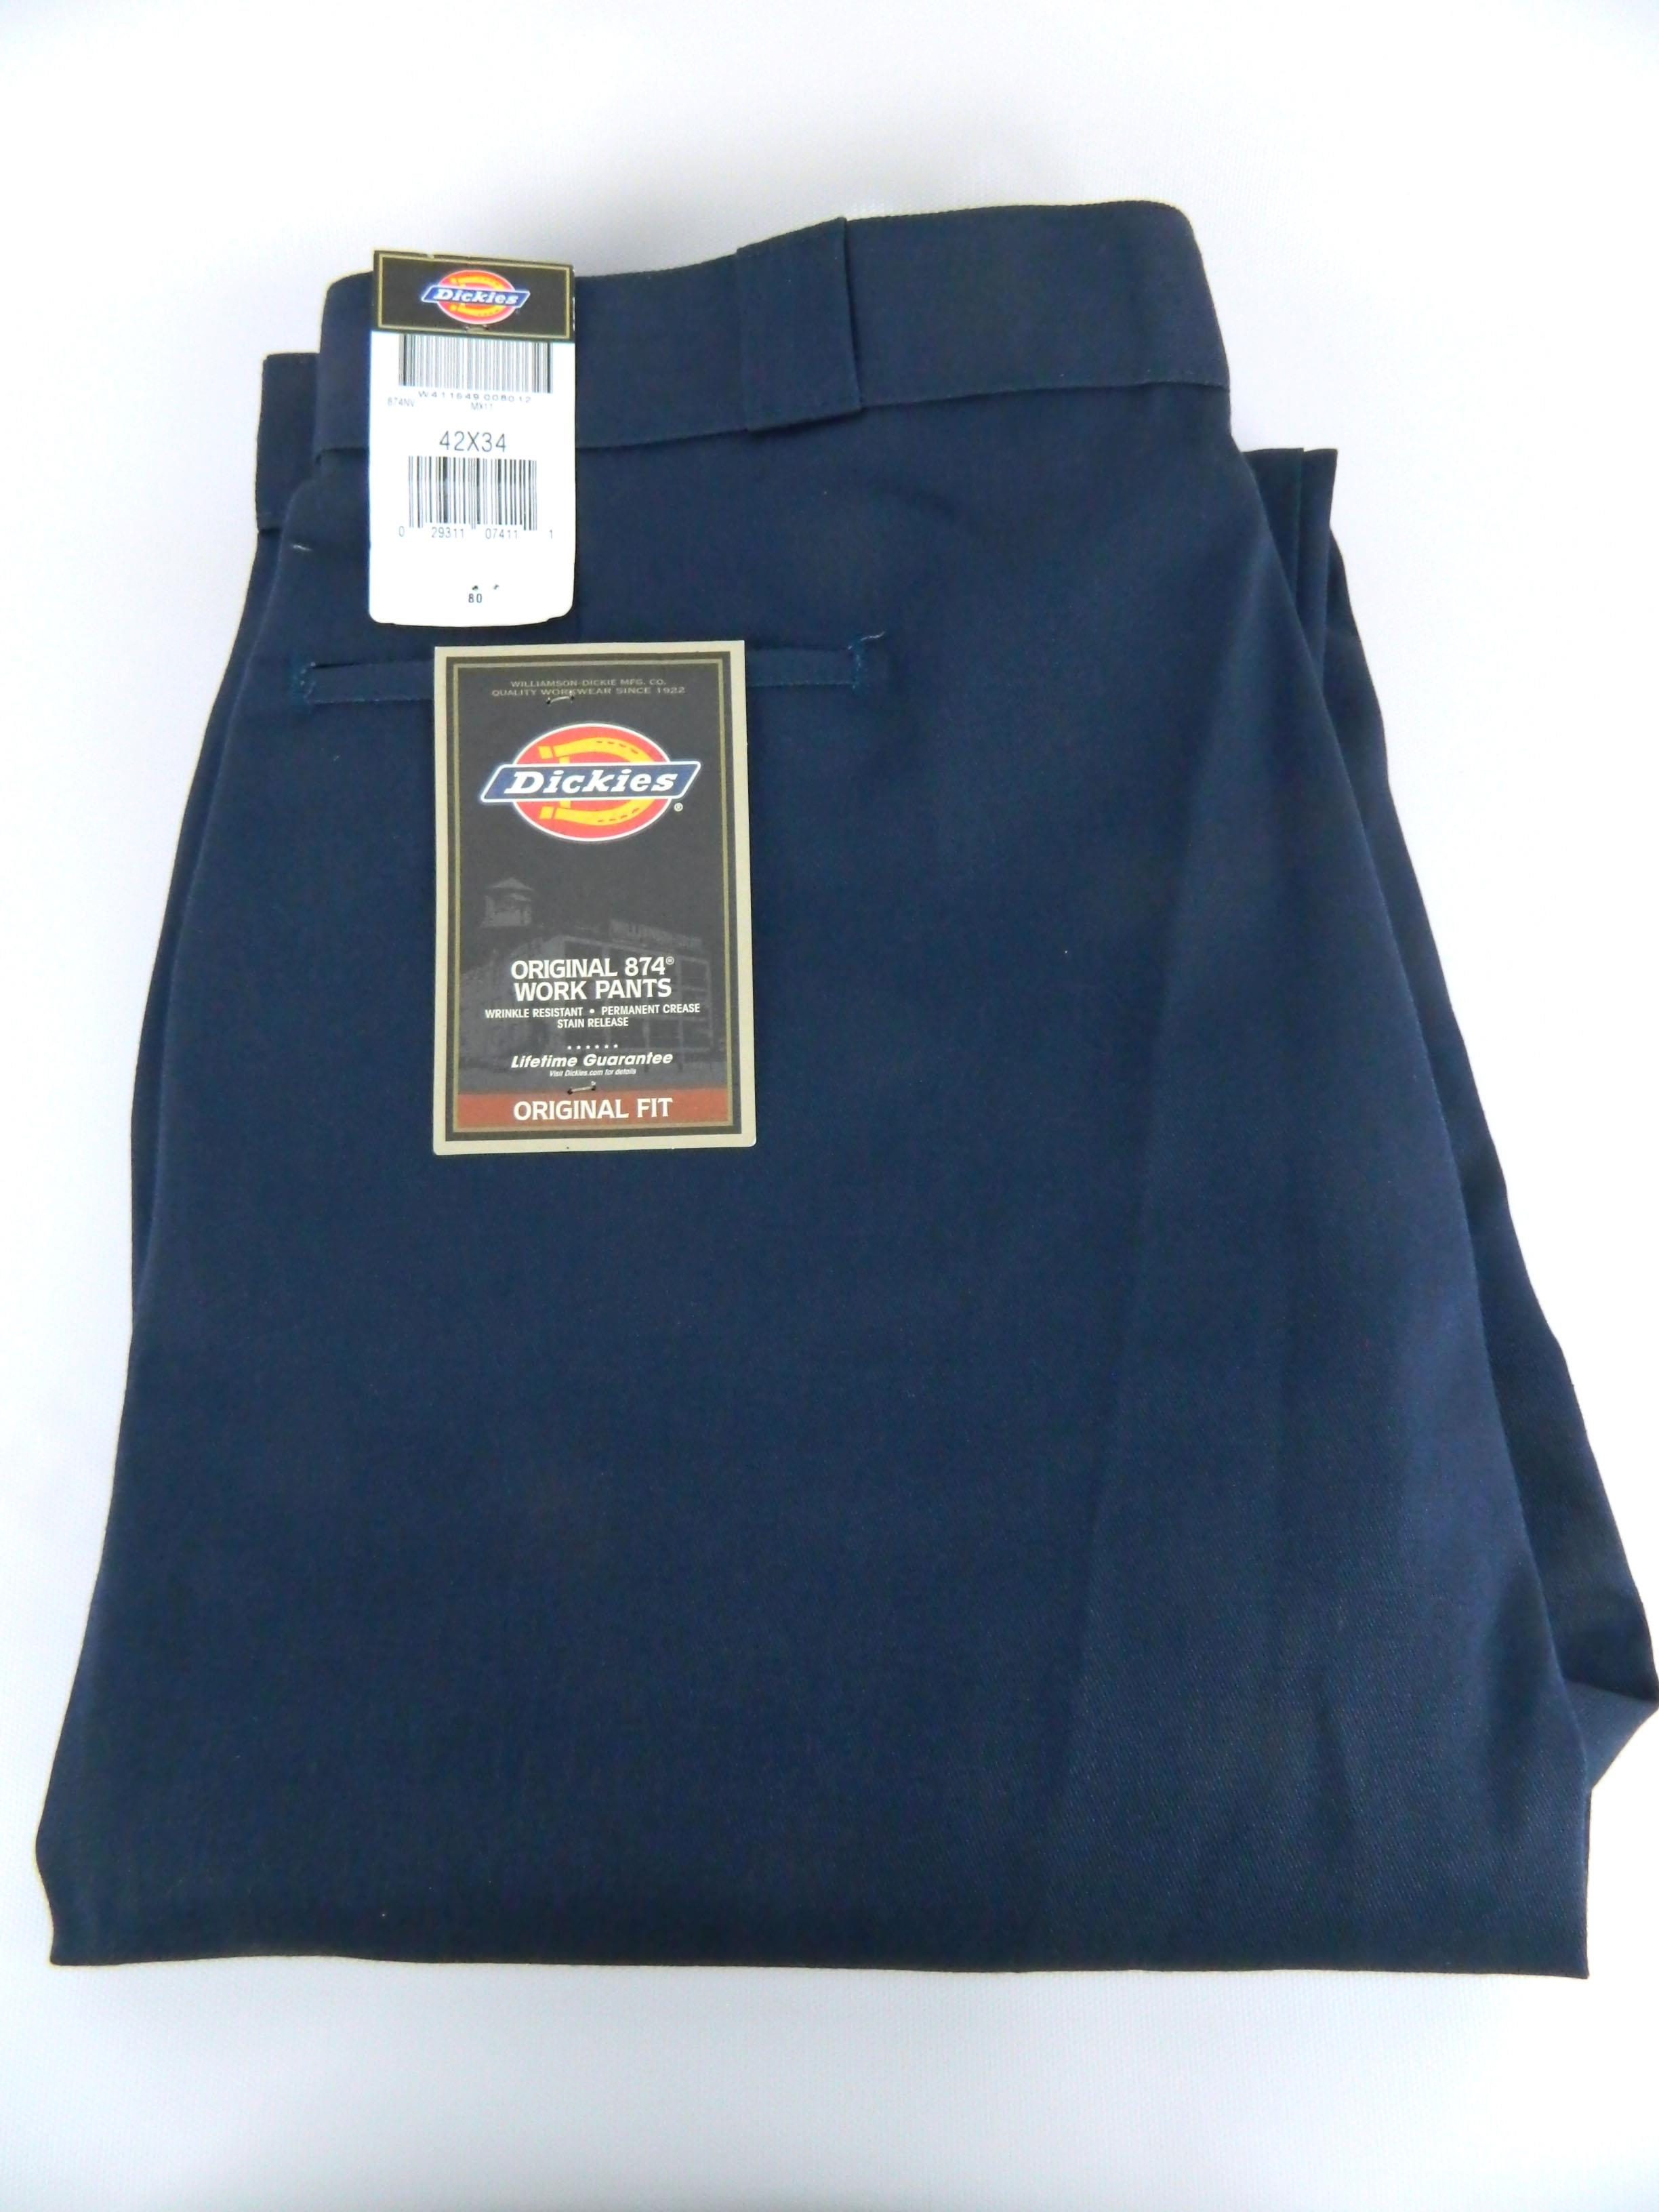 d985ea0ae32a Details about new with tags mens dickies original classic work pants navy  blue jpg 2448x3264 Aged